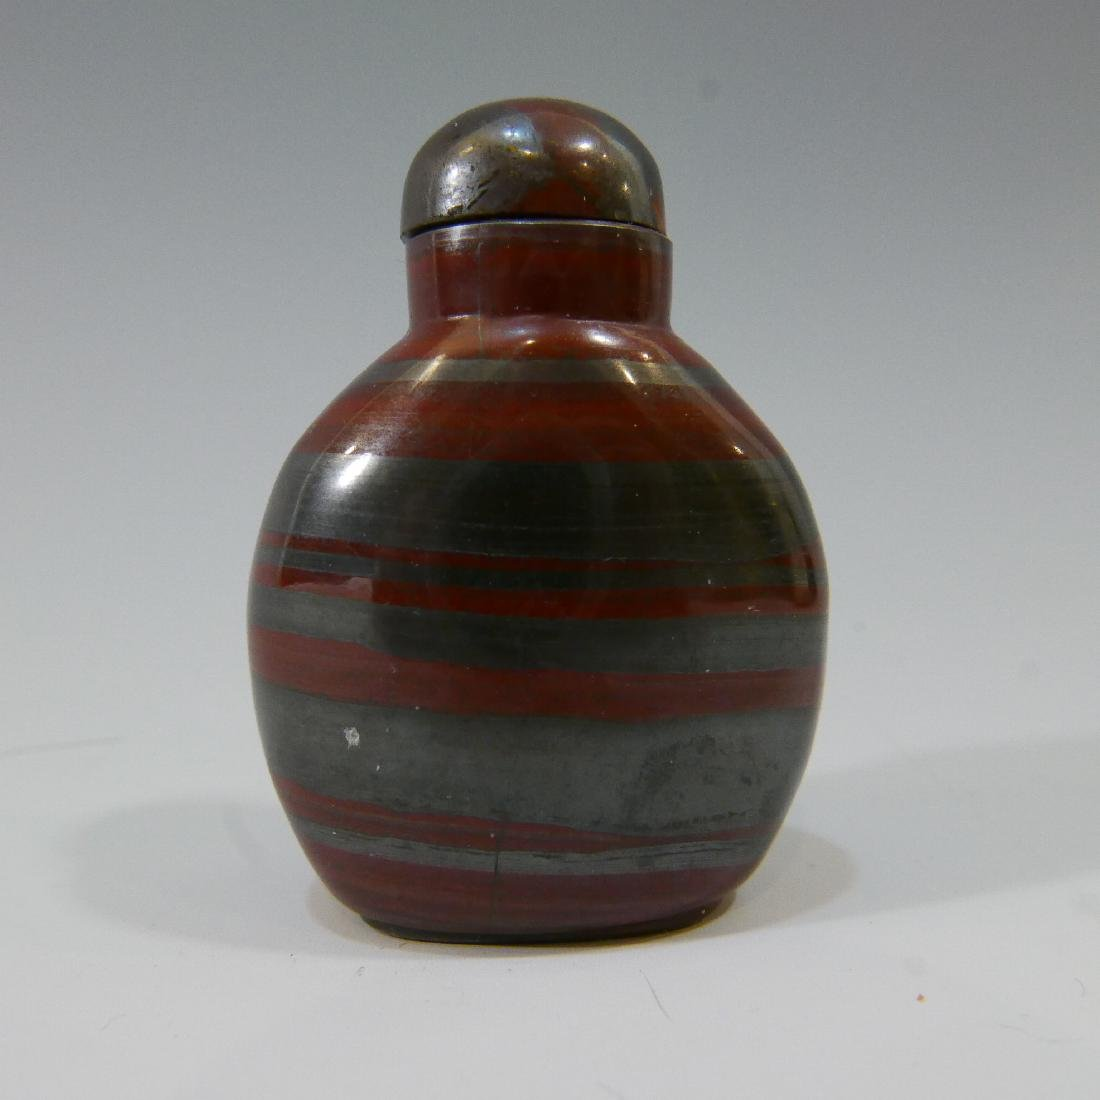 CHINESE ANTIQUE SNUFF BOTTLE - AGATE - QING DYNASTY - 2